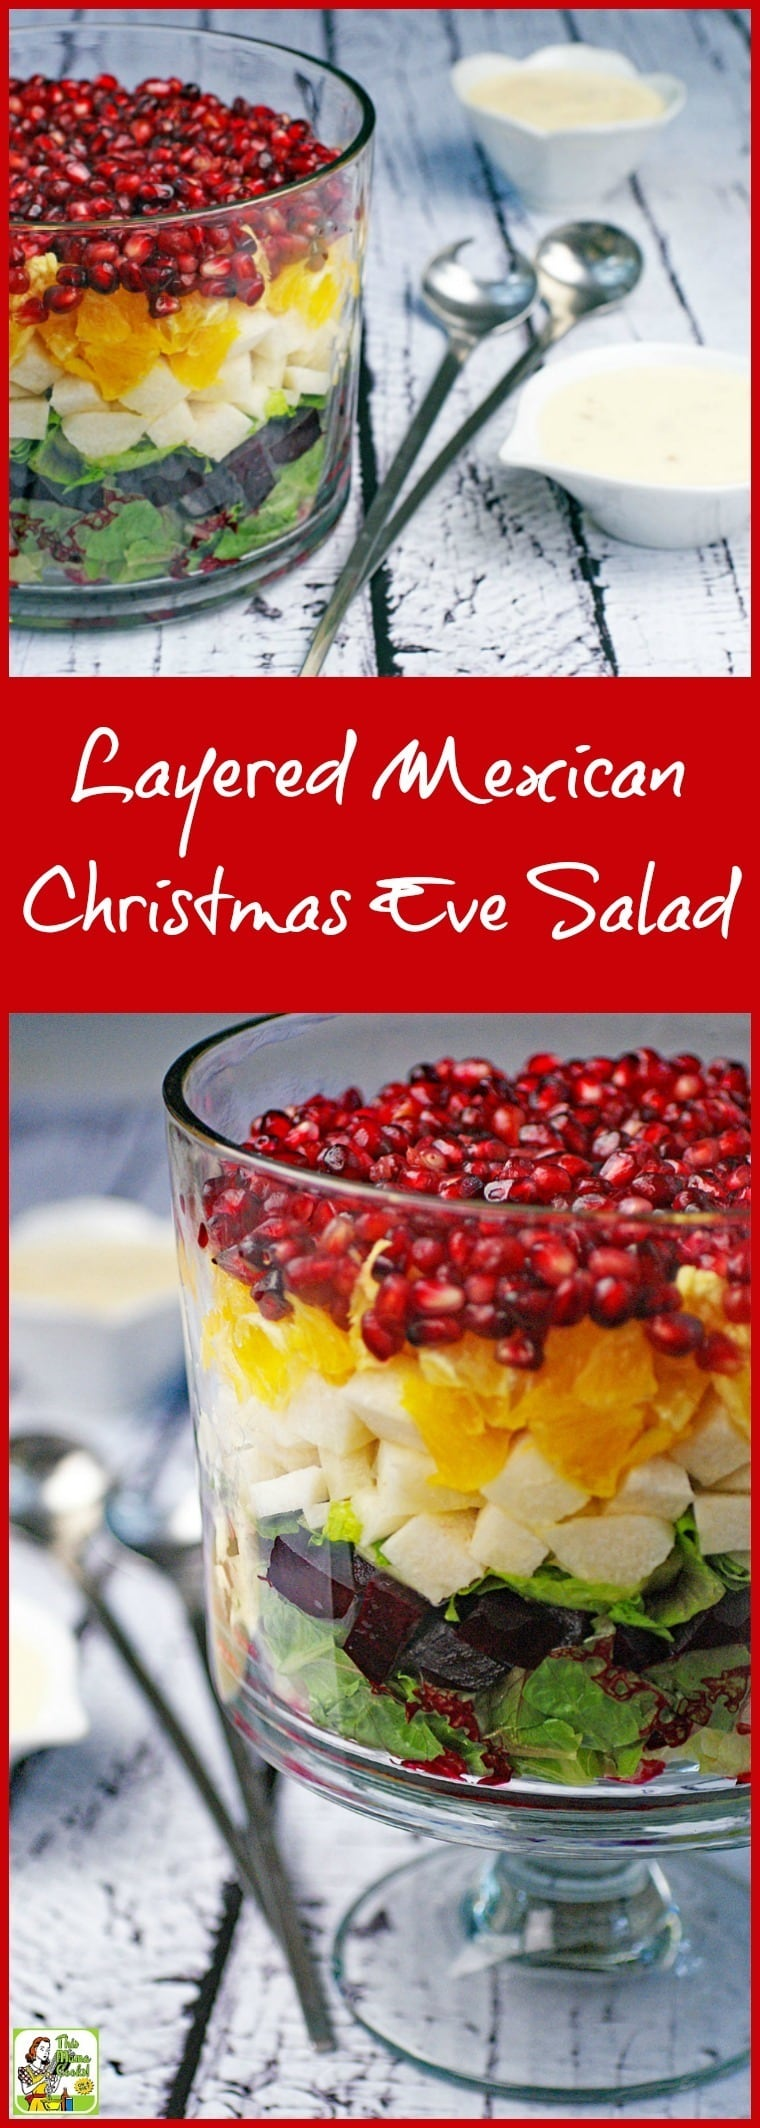 How to make a layered mexican christmas eve salad this mama cooks make something different for the holidays or any time of the year learn how to forumfinder Image collections